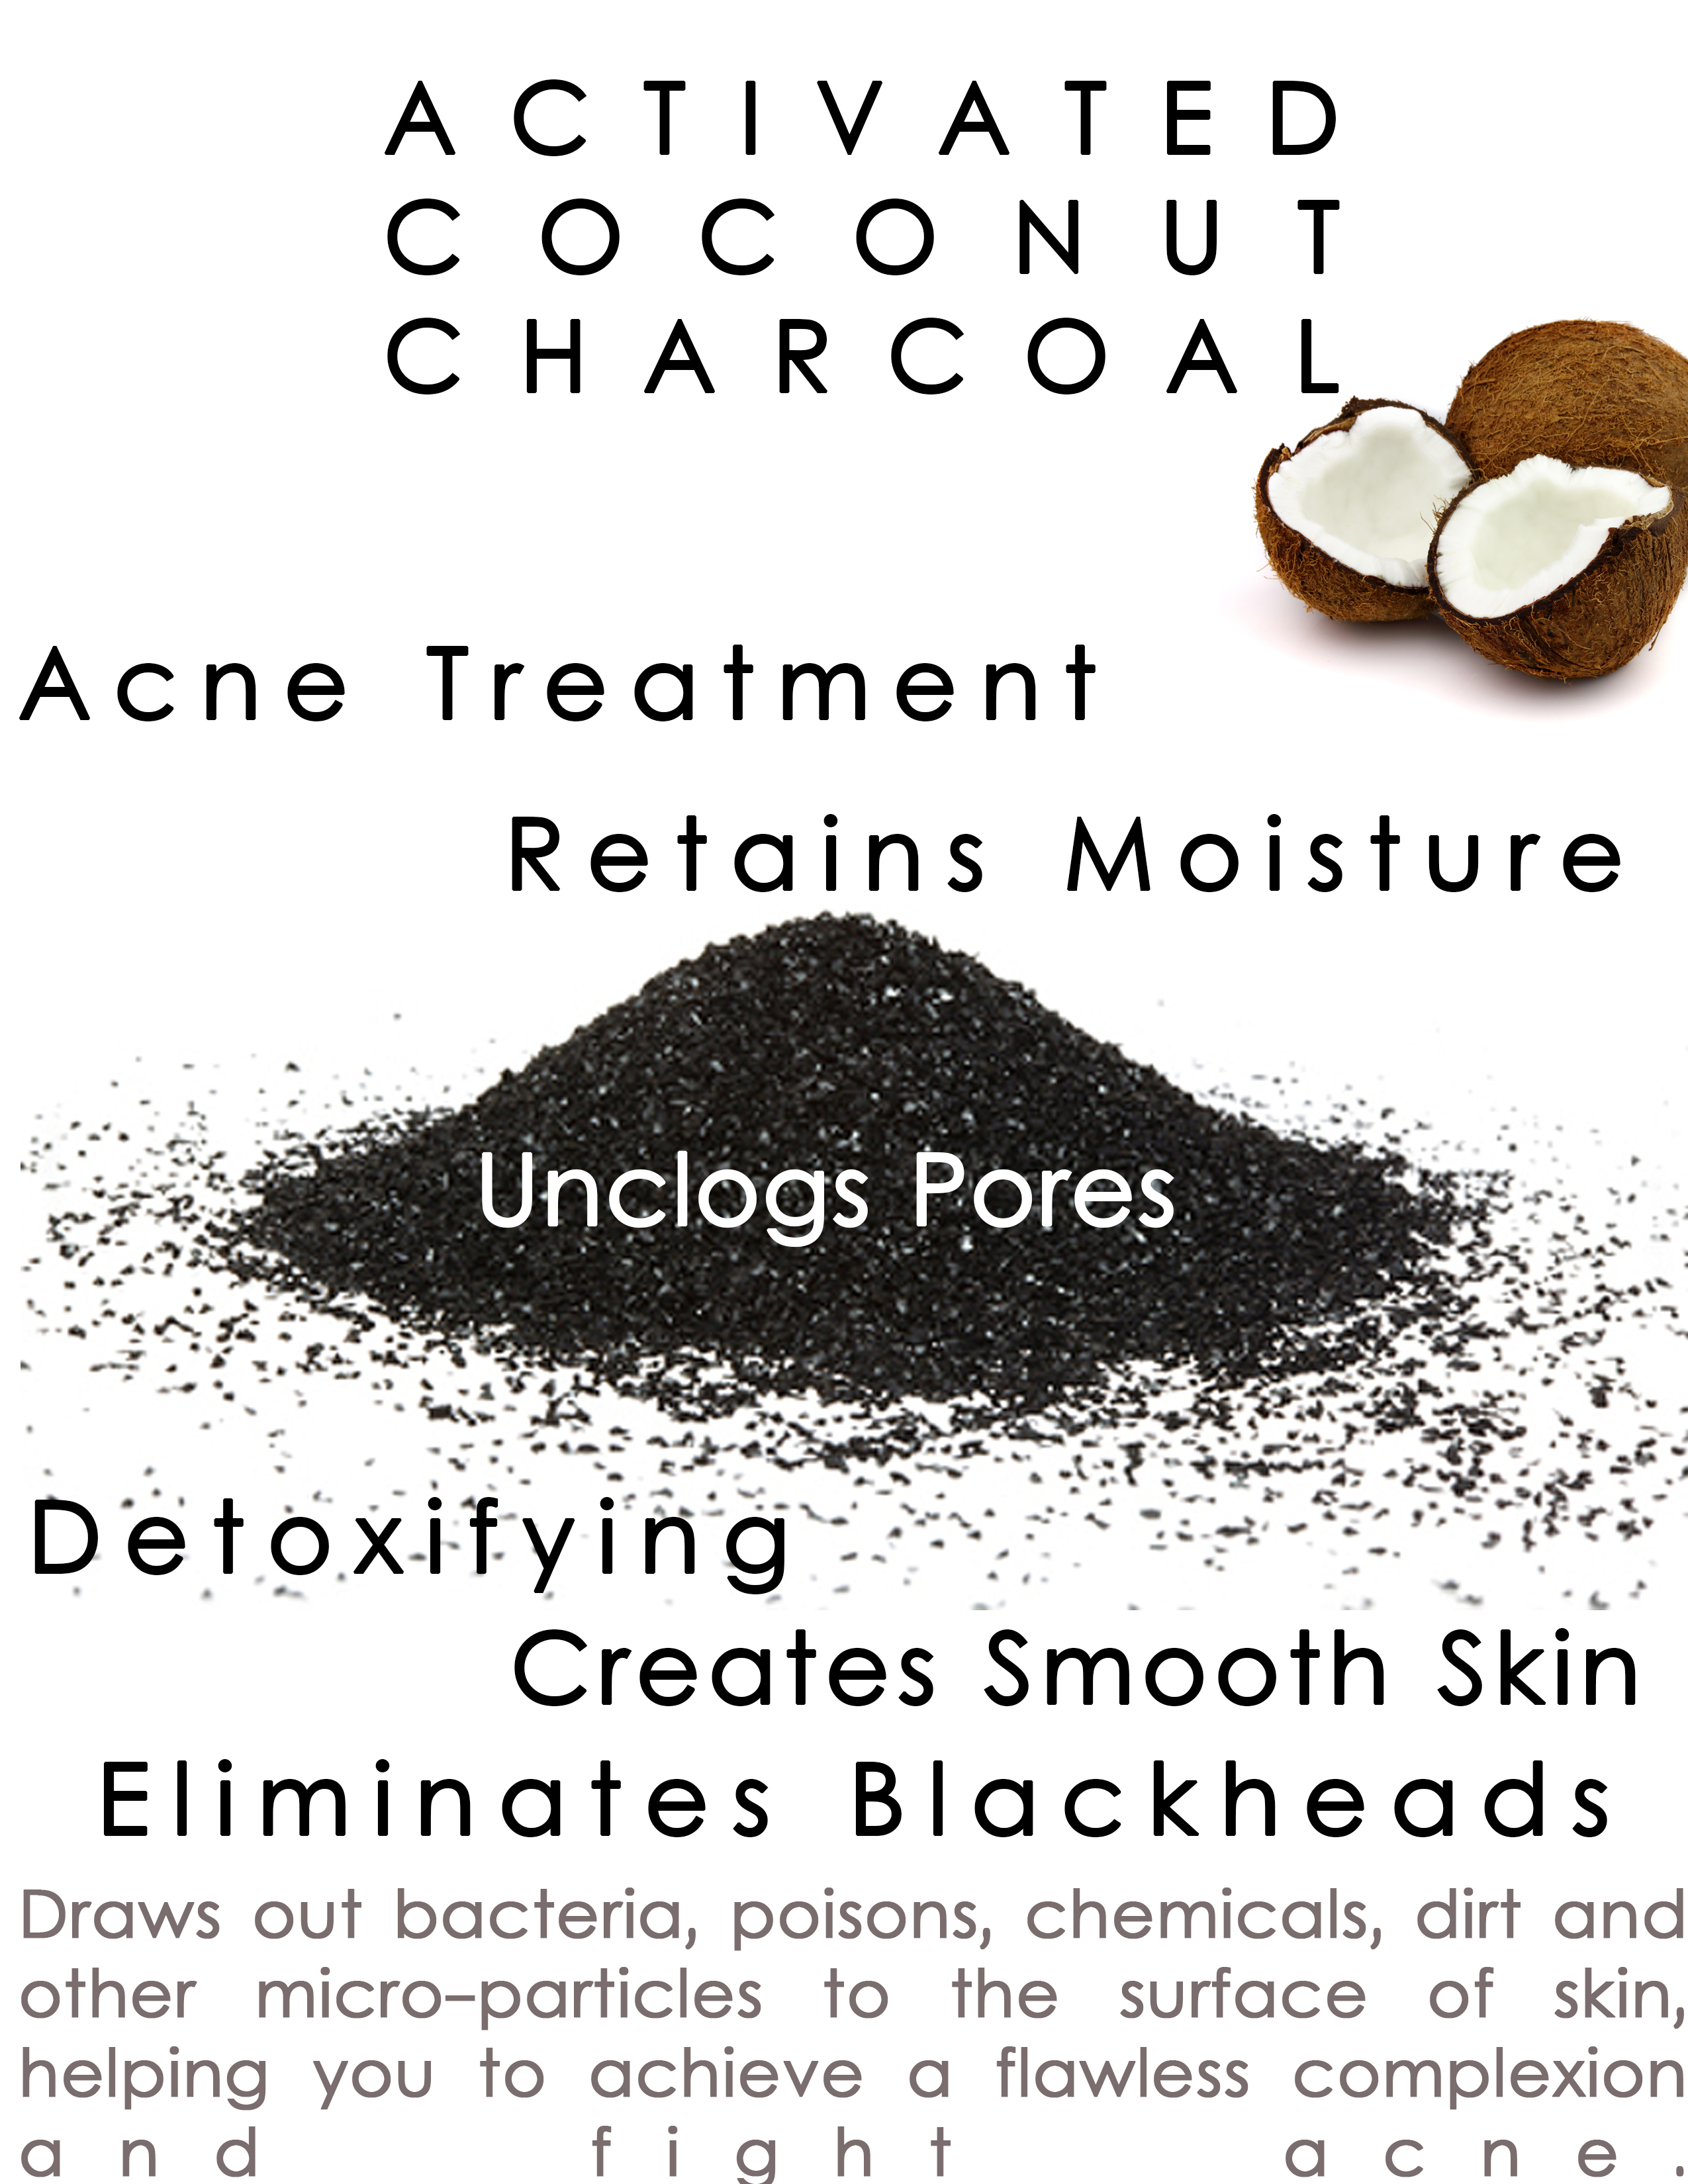 activated-coconut-charcoal-the-good-stuff-botanicals.jpg